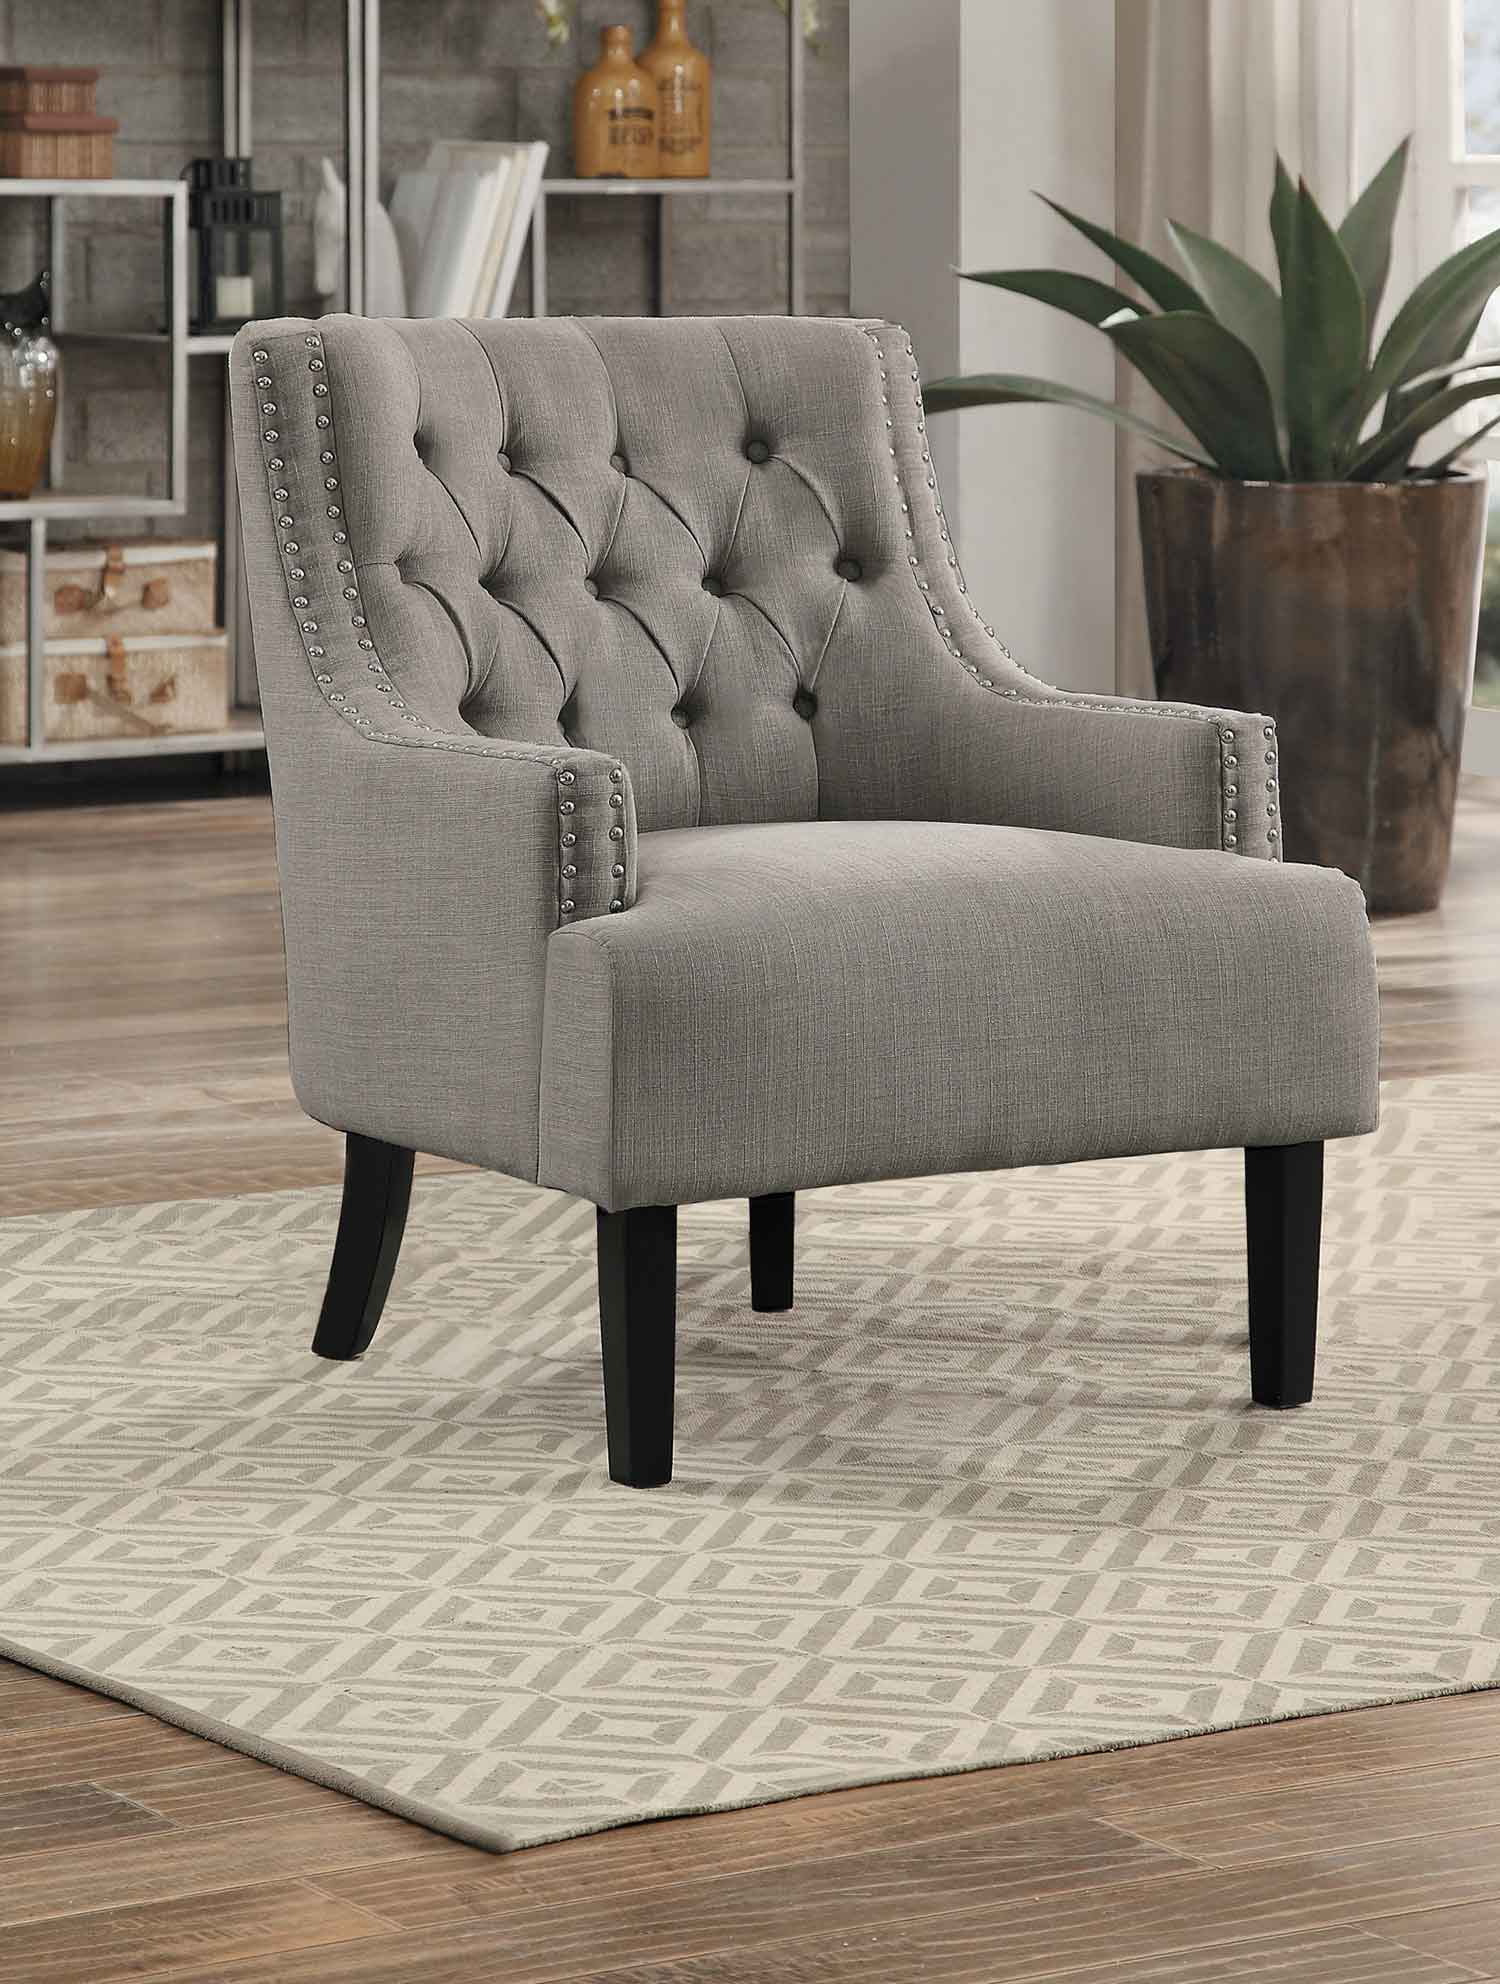 Homelegance Charisma Accent Chair Taupe 1194tp At